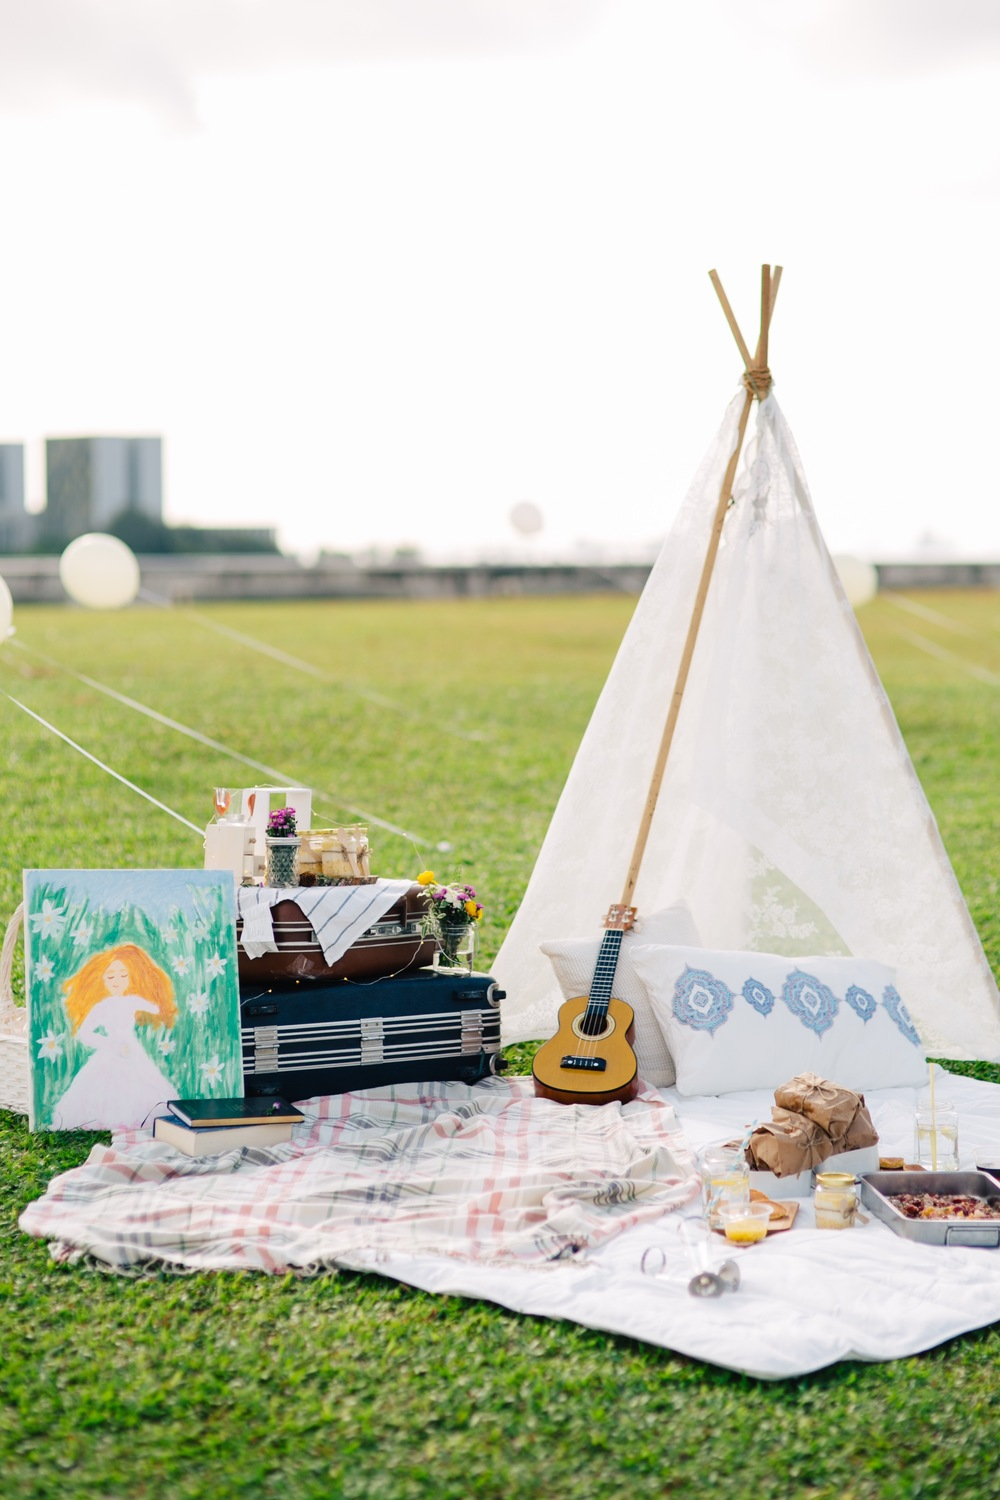 display teepee 1.jpg